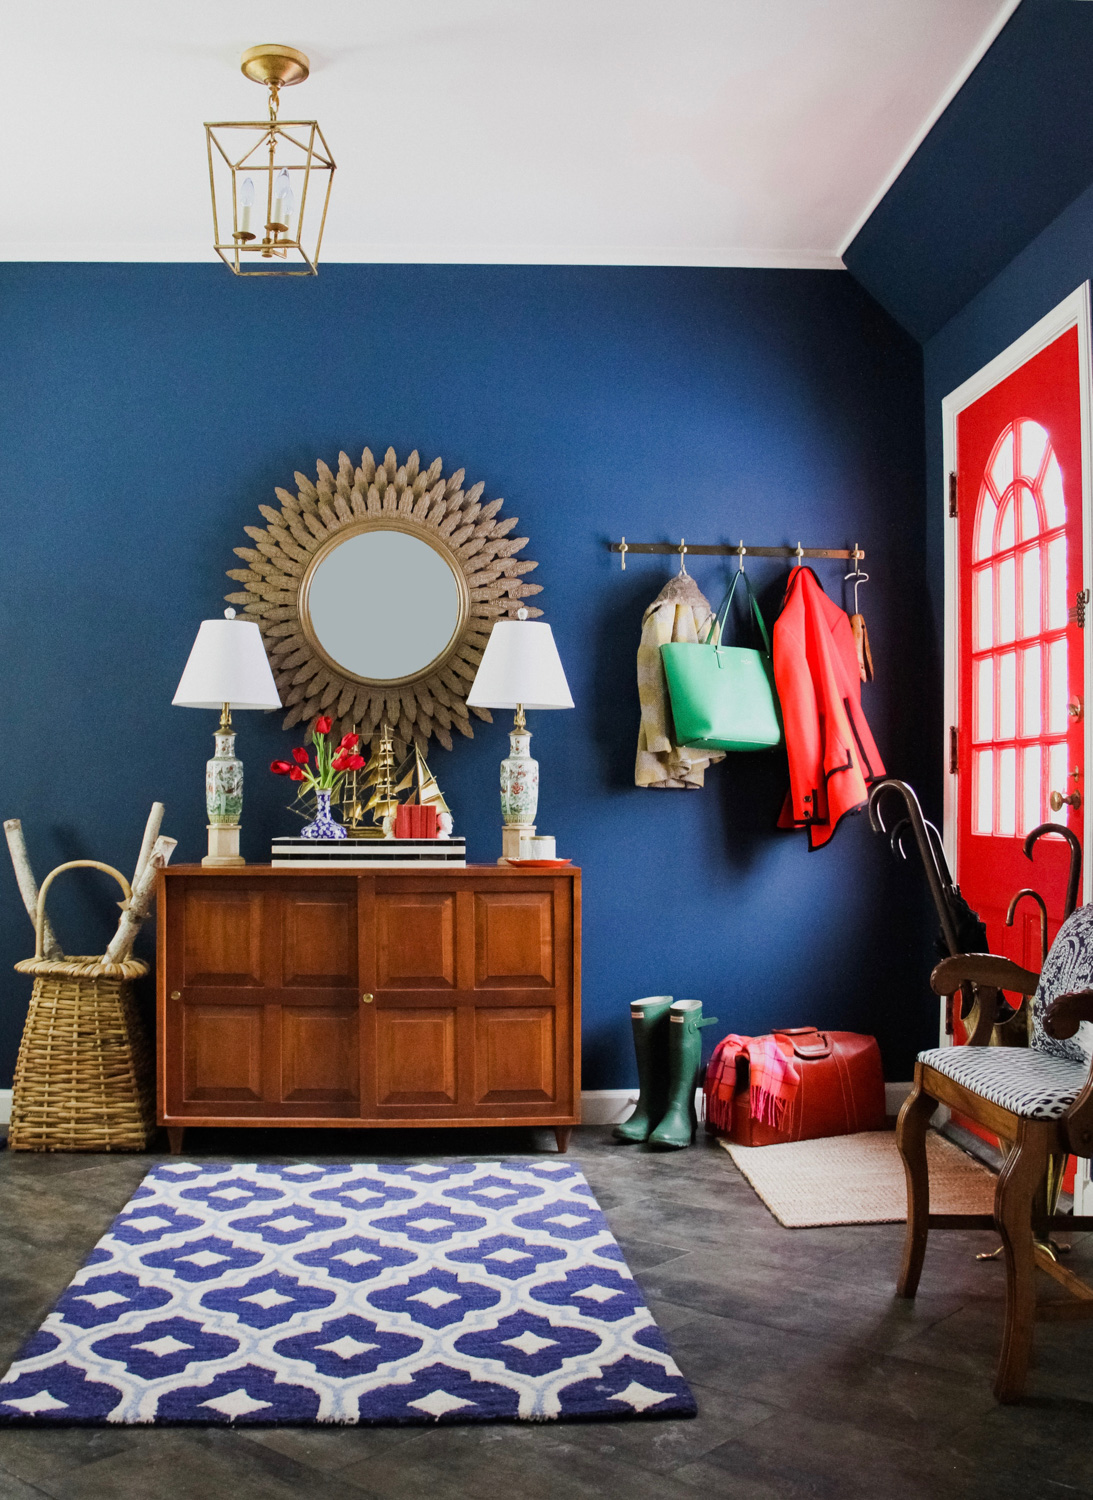 Town & Country Mod Entryway-2.jpg